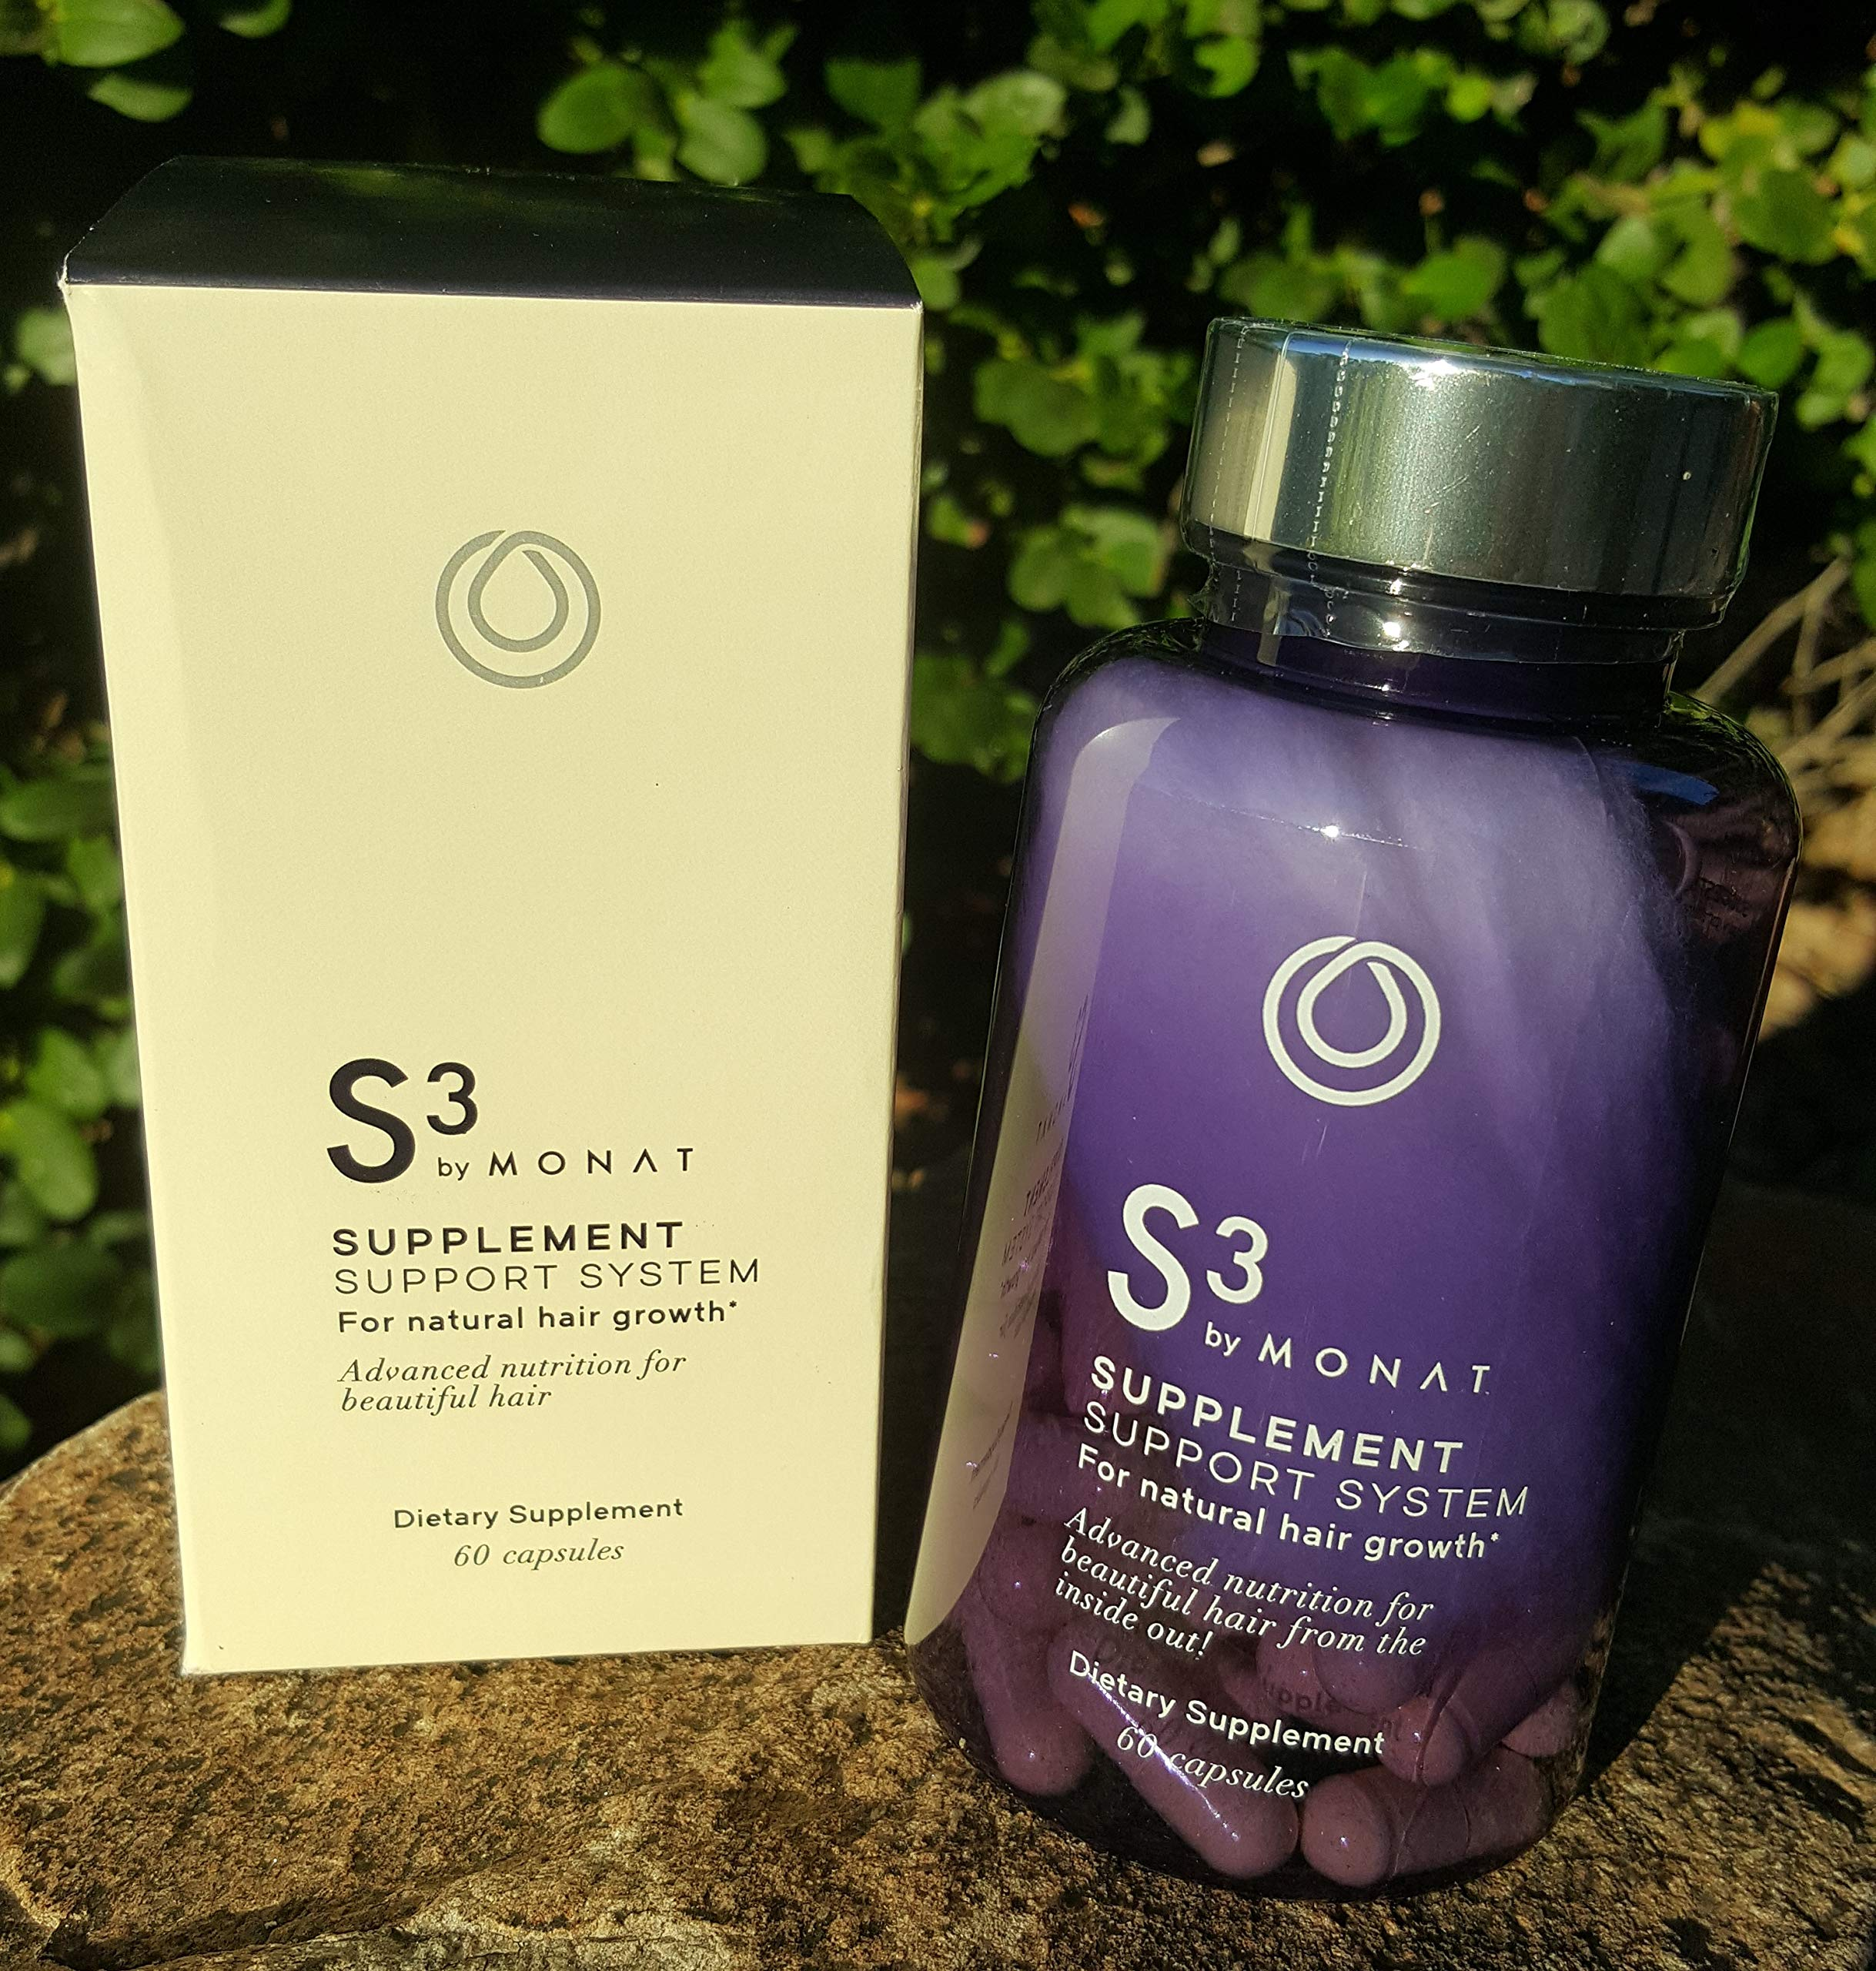 Monat Hair S3 Supplement Support System for Natural Hair Growth (60capsules)